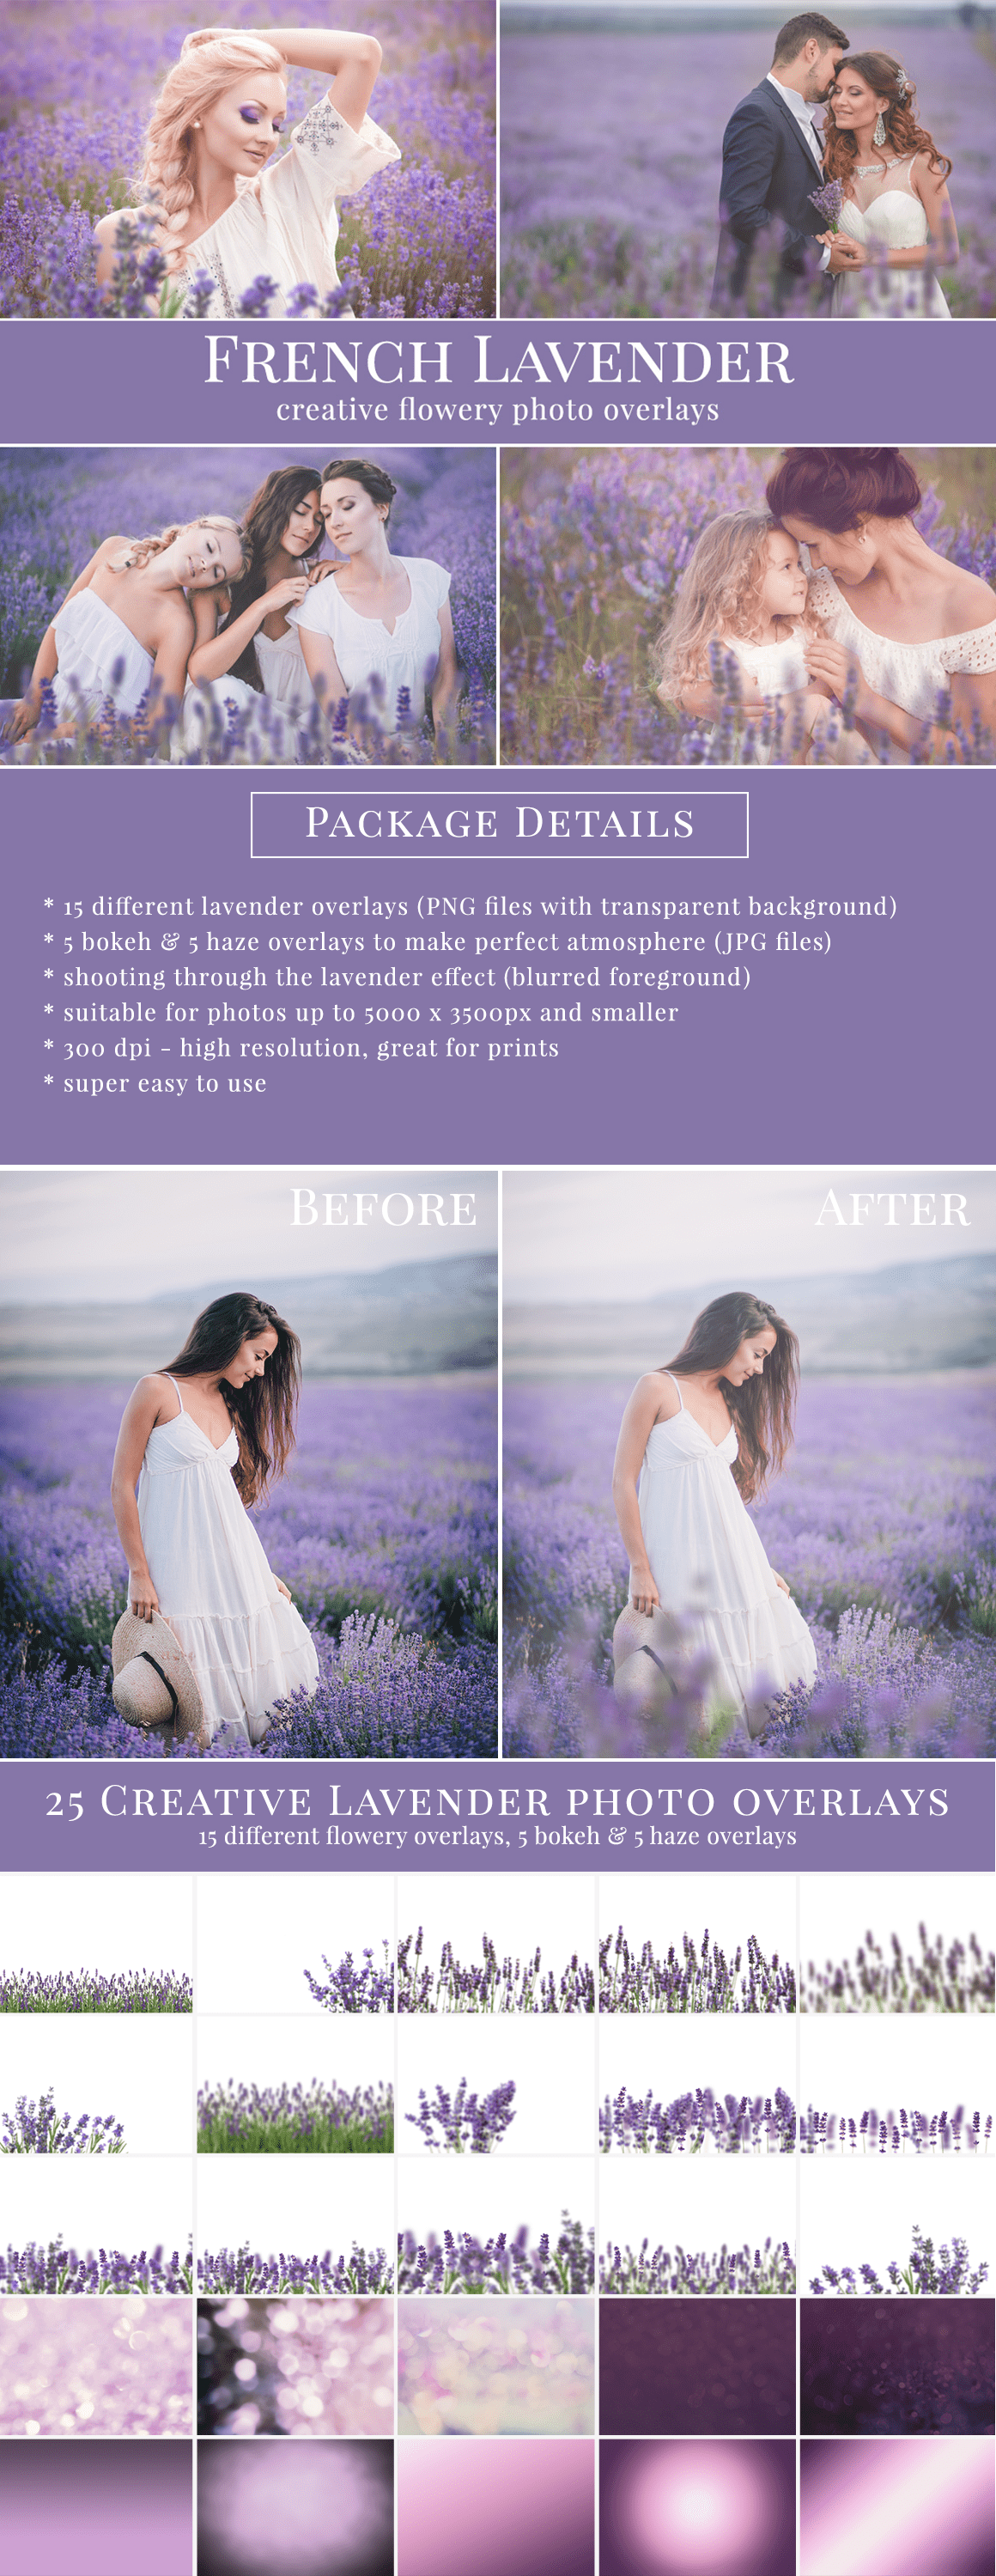 French Lavender photo overlays